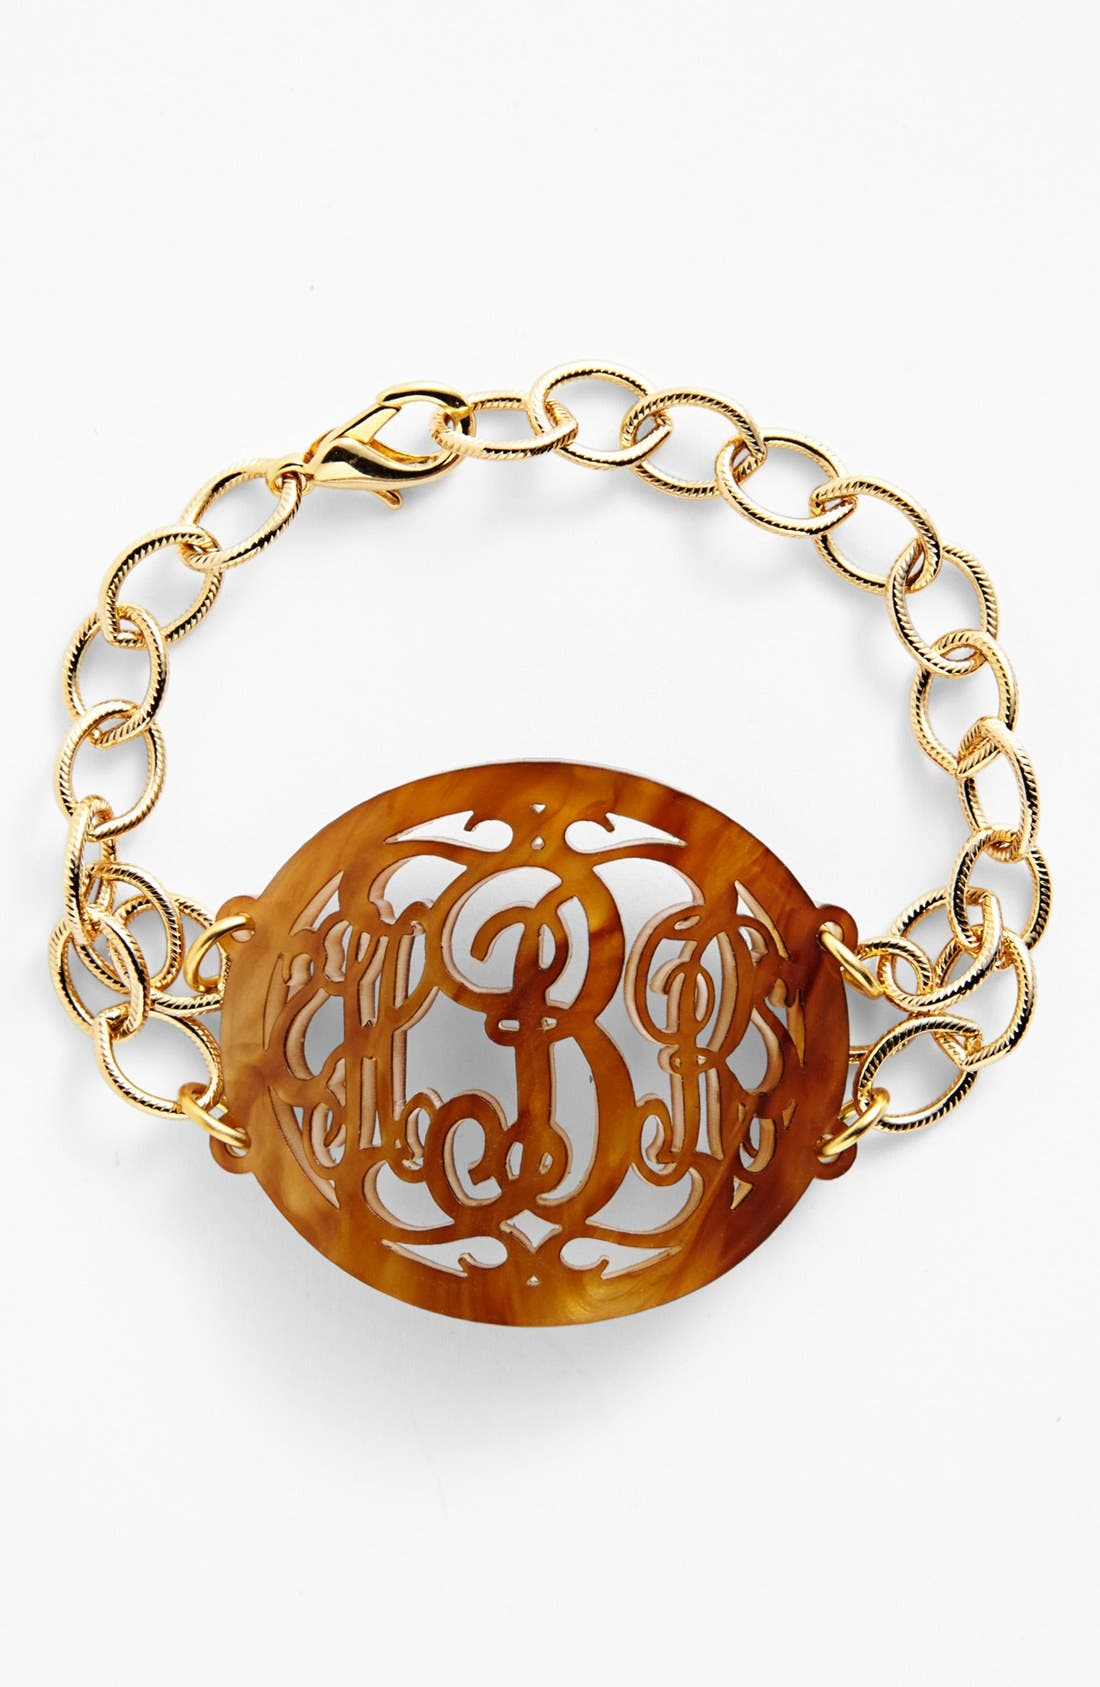 Alternate Image 1 Selected - Moon and Lola 'Annabel' Large Oval Personalized Monogram Bracelet (Nordstrom Exclusive)